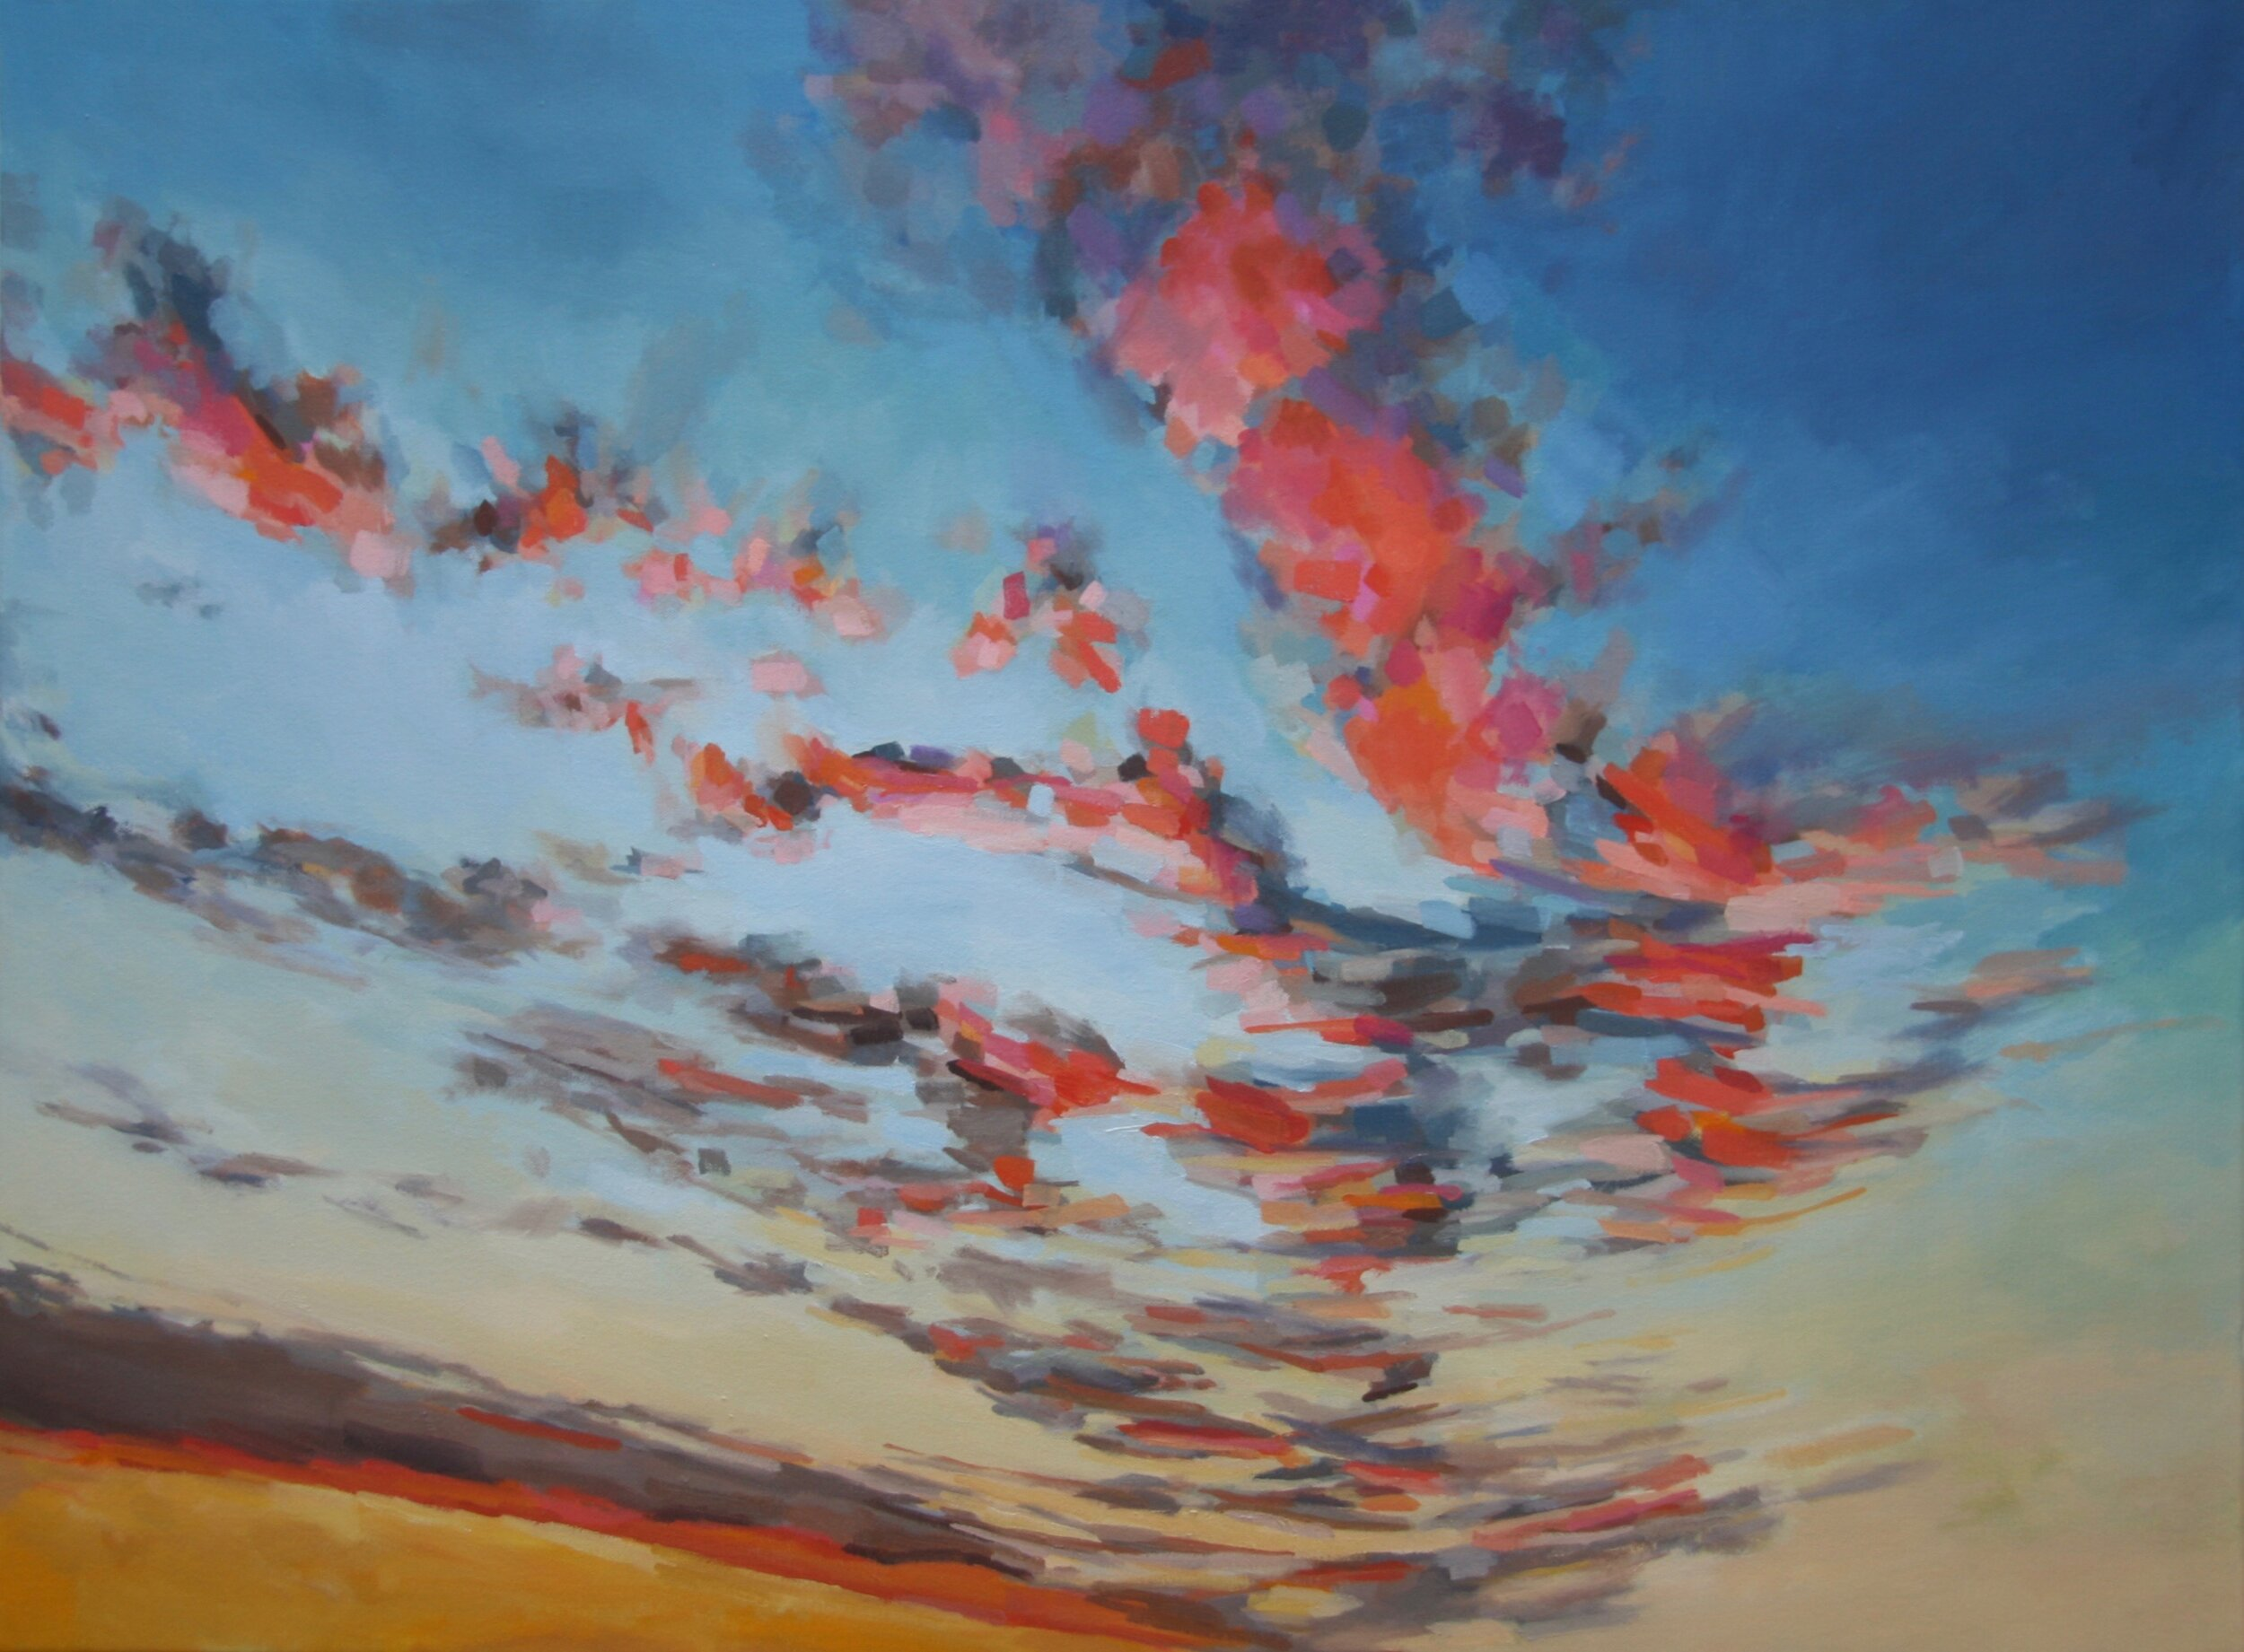 """'Twilight II'  2015  40"""" x 30""""  water soluble oil on canvas  sold"""